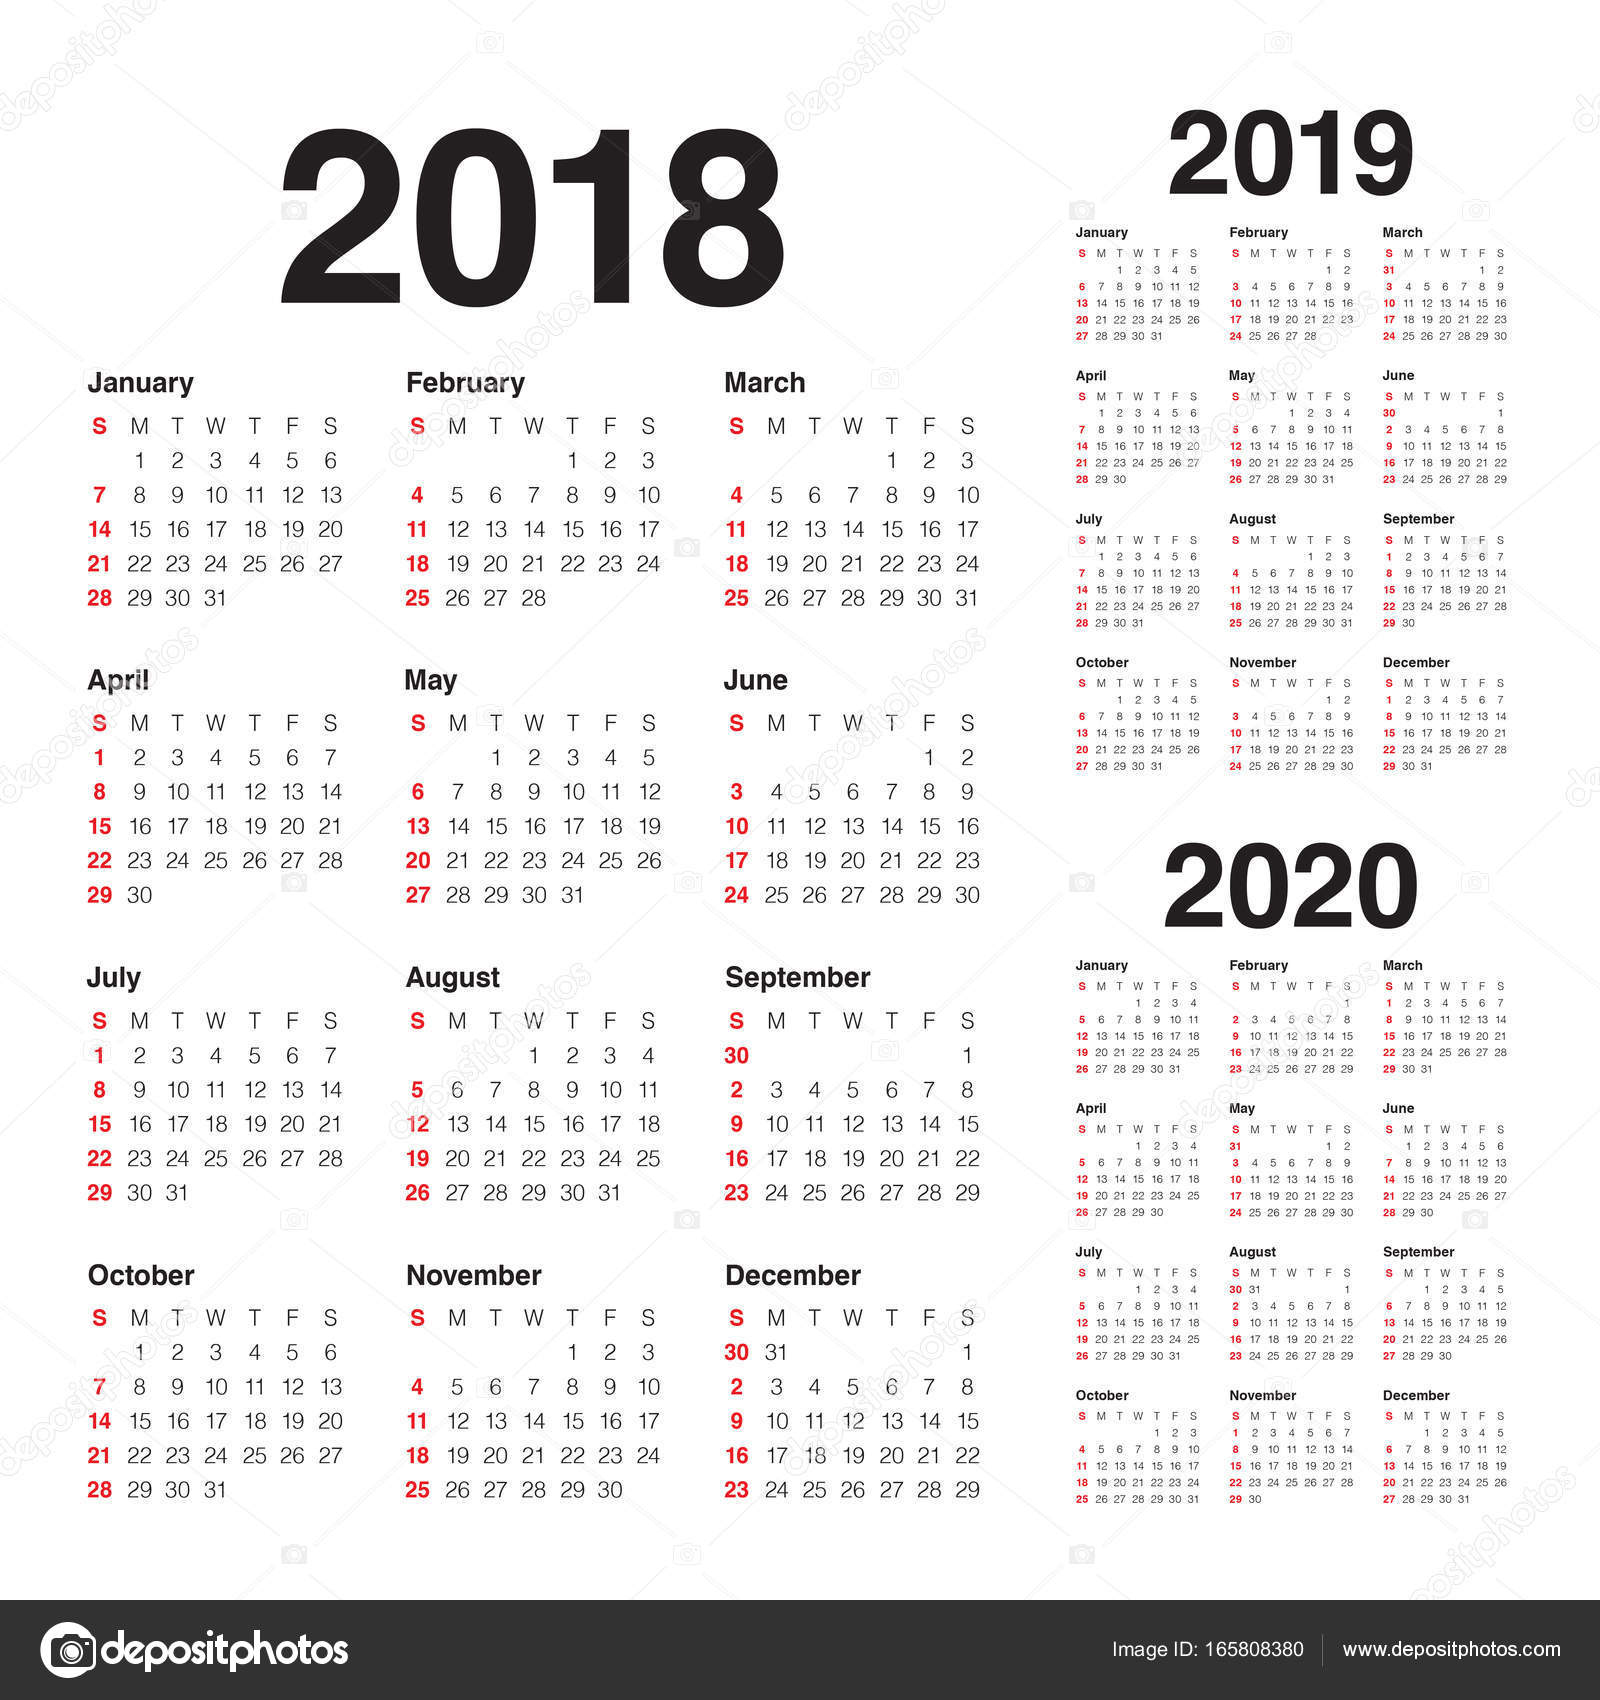 Calendario 2020 Vector Gratis.Year 2018 2019 2020 Calendar Vector Stock Vector